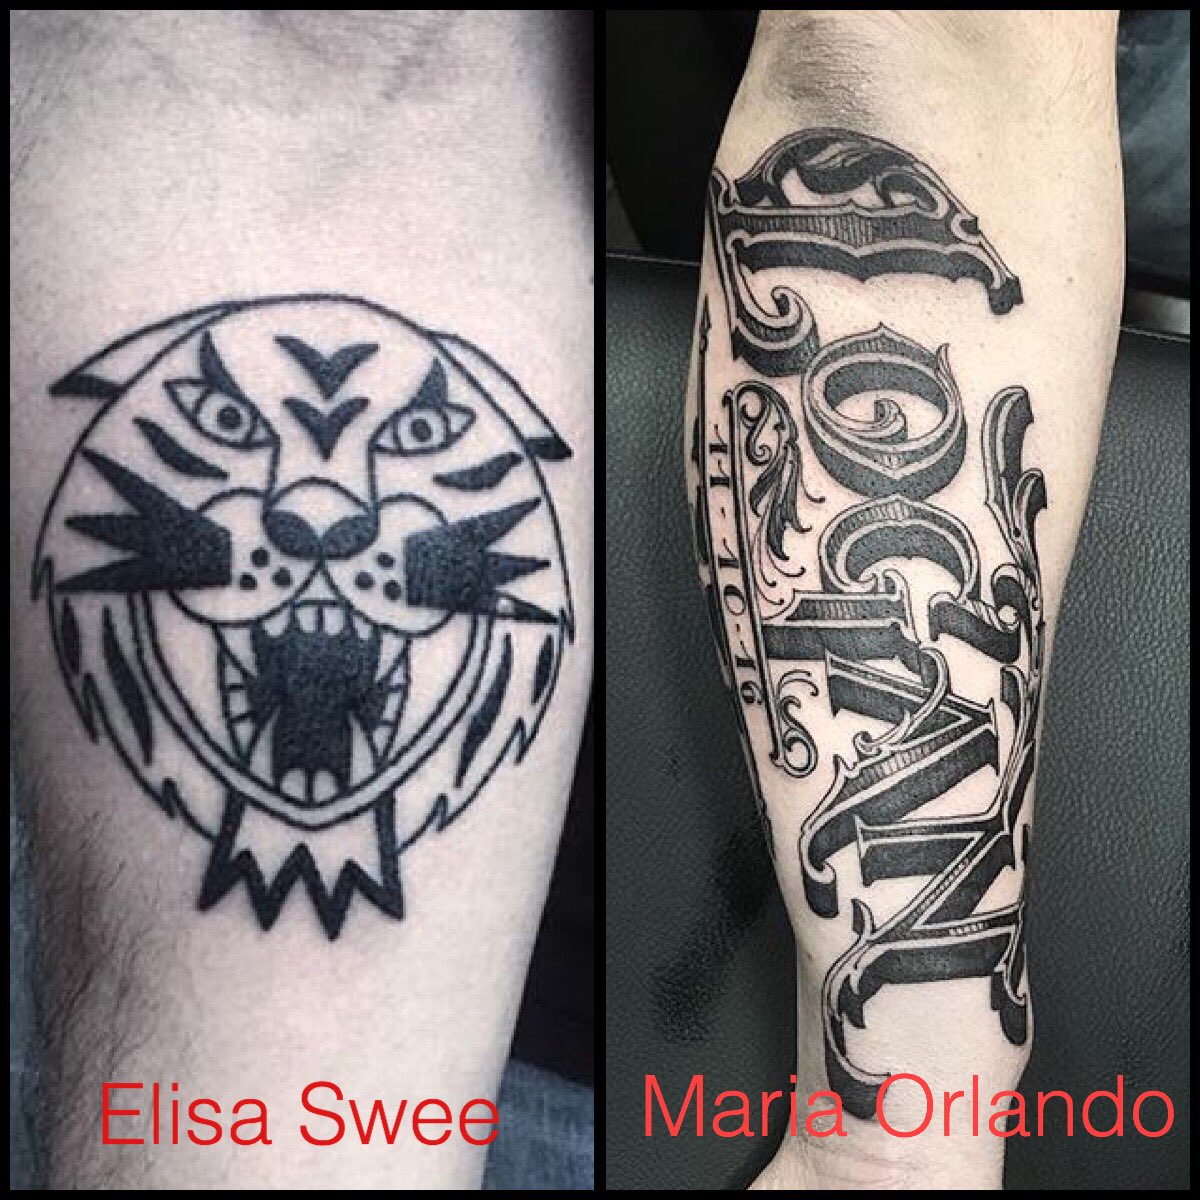 ba1ed7350a6db PMP Tattoo Guest 17 Marzo @maria_orlando @elisa__swee #tattoos #tattooink # ink #tattooboys #love #lovetattoo #tattoolove #tattooed #cool #amezing  #special ...